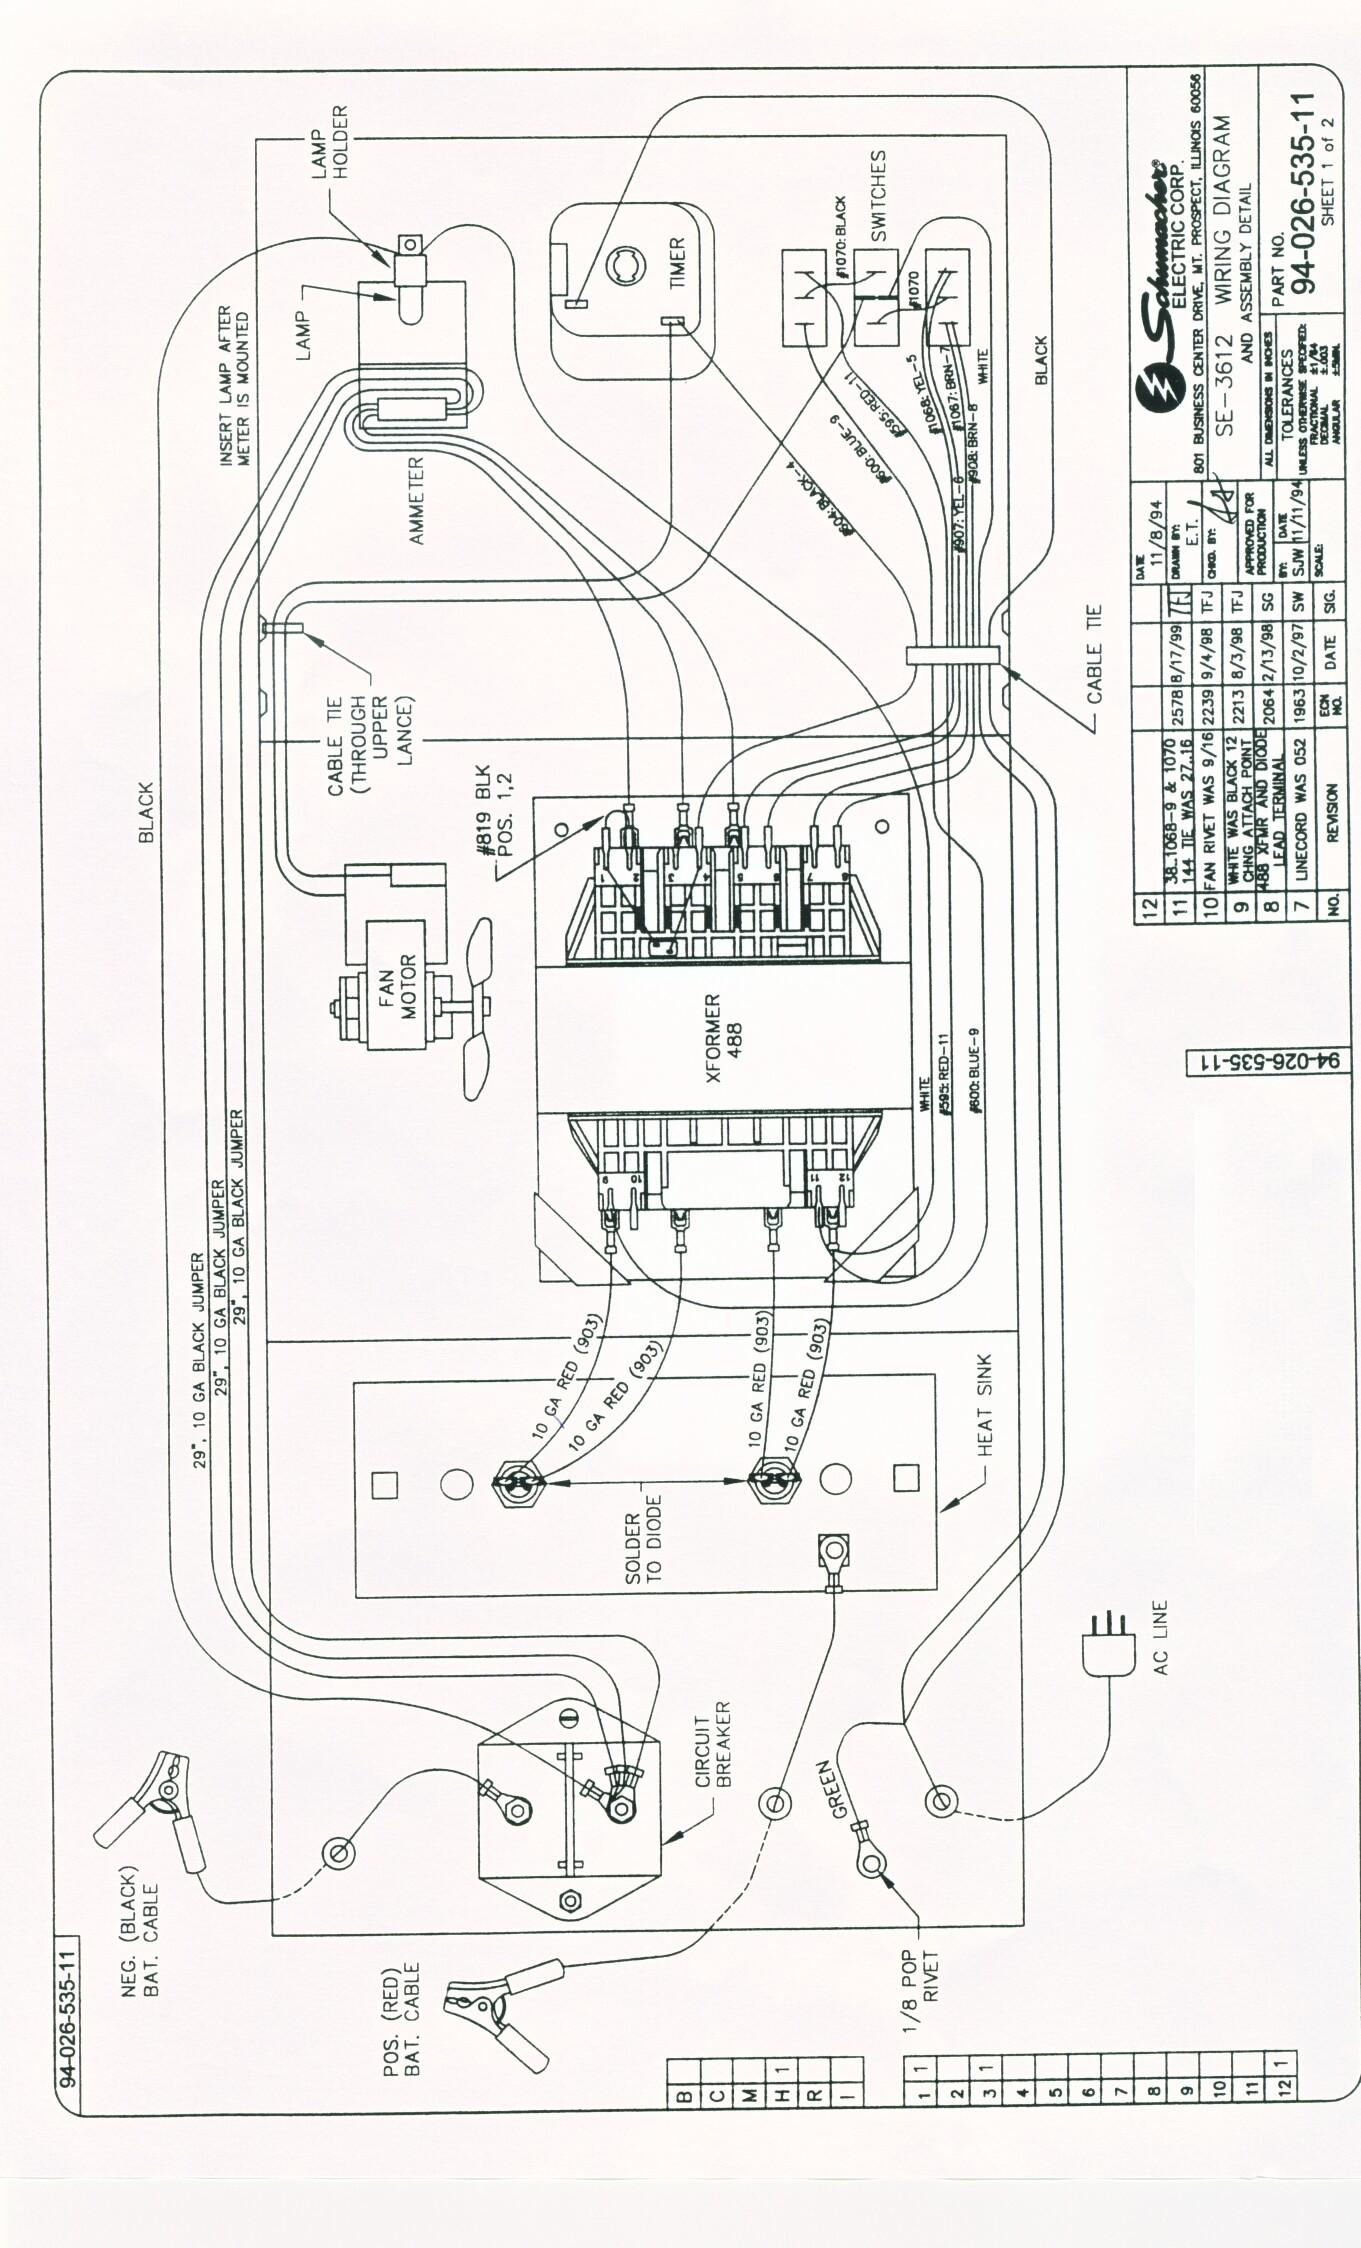 wiring diagram for schumacher se 1010